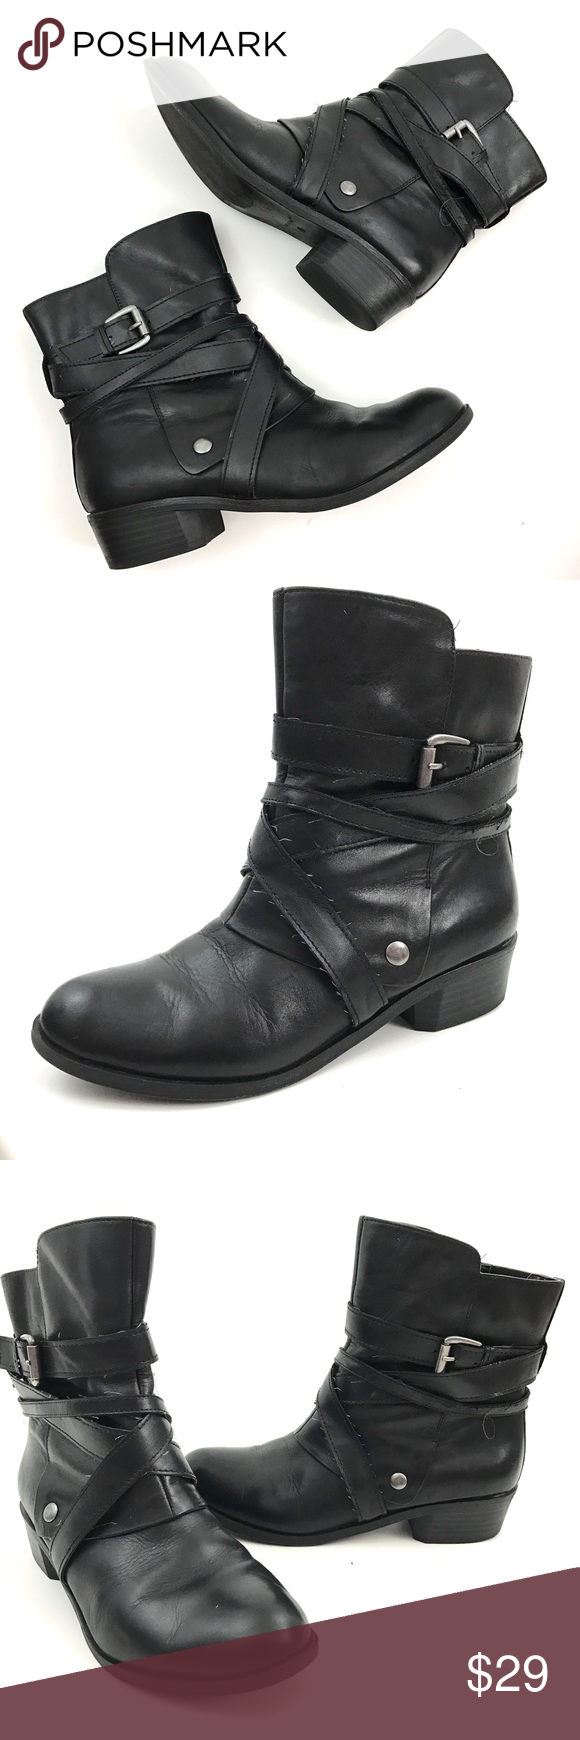 "Kelly & Katie Black Leather Ankle Boots Brand: Kelly & Katie  Size:9 M  Heel Height:1.5""  Boot Shaft: 6.5""  Circumference:5.5""  Platform Height:1/2""  Condition:Pre owned.In good Shape. Leather Has Been Recently conditioned. No Holes, Stains or Fading  Original Box/Dust Bag is Not Included     Item comes from a pet free/smoke free clean environment  please contact me for any additional questions  I offer combined shipping Kelly & Katie Shoes Ankle Boots & Booties"